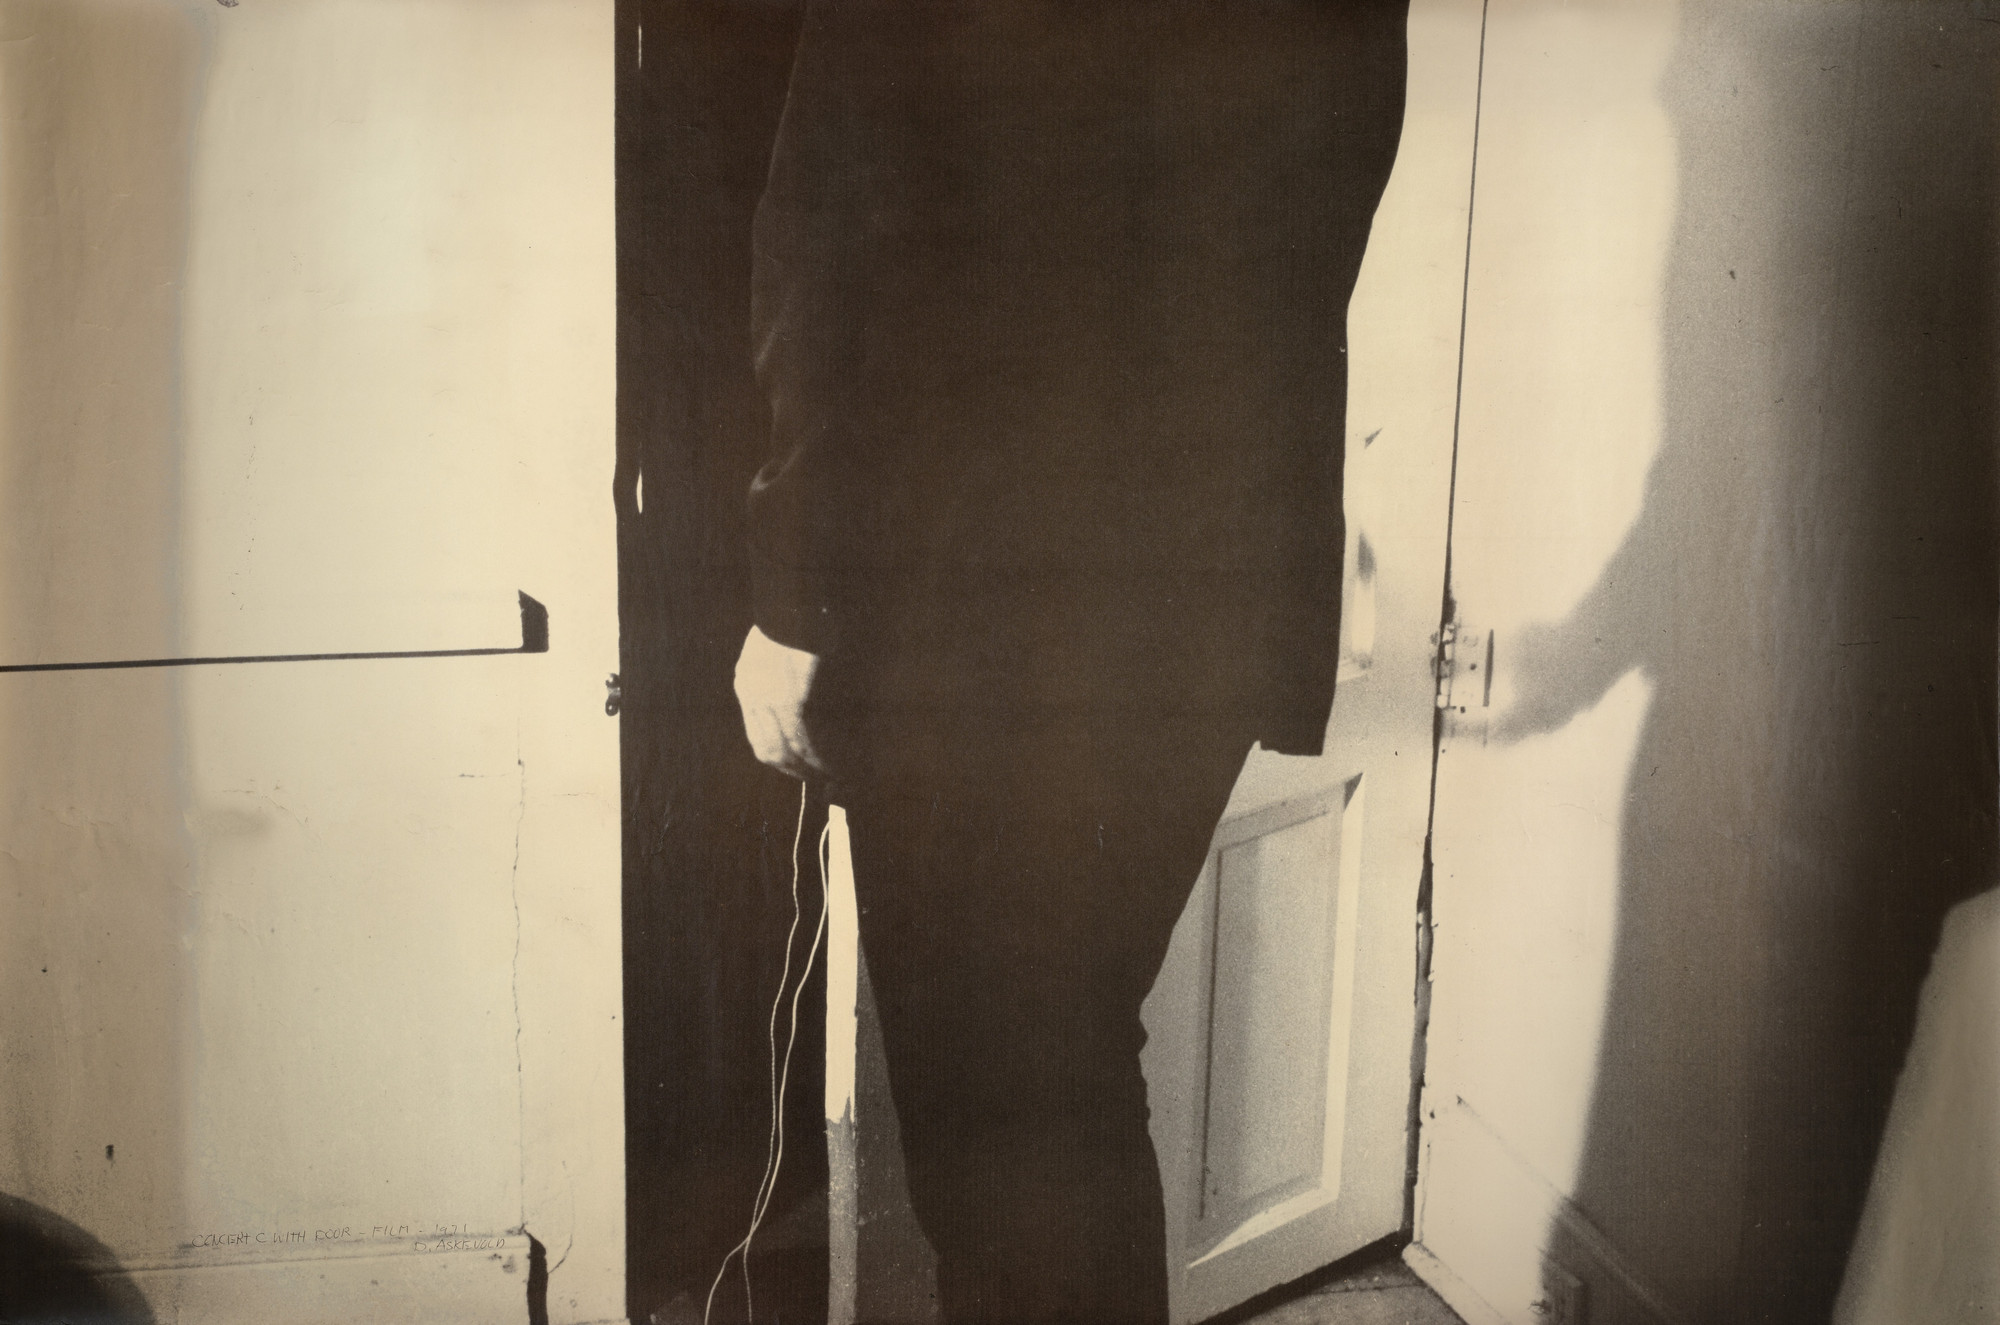 David Askevold. Concert C with Door. 1971